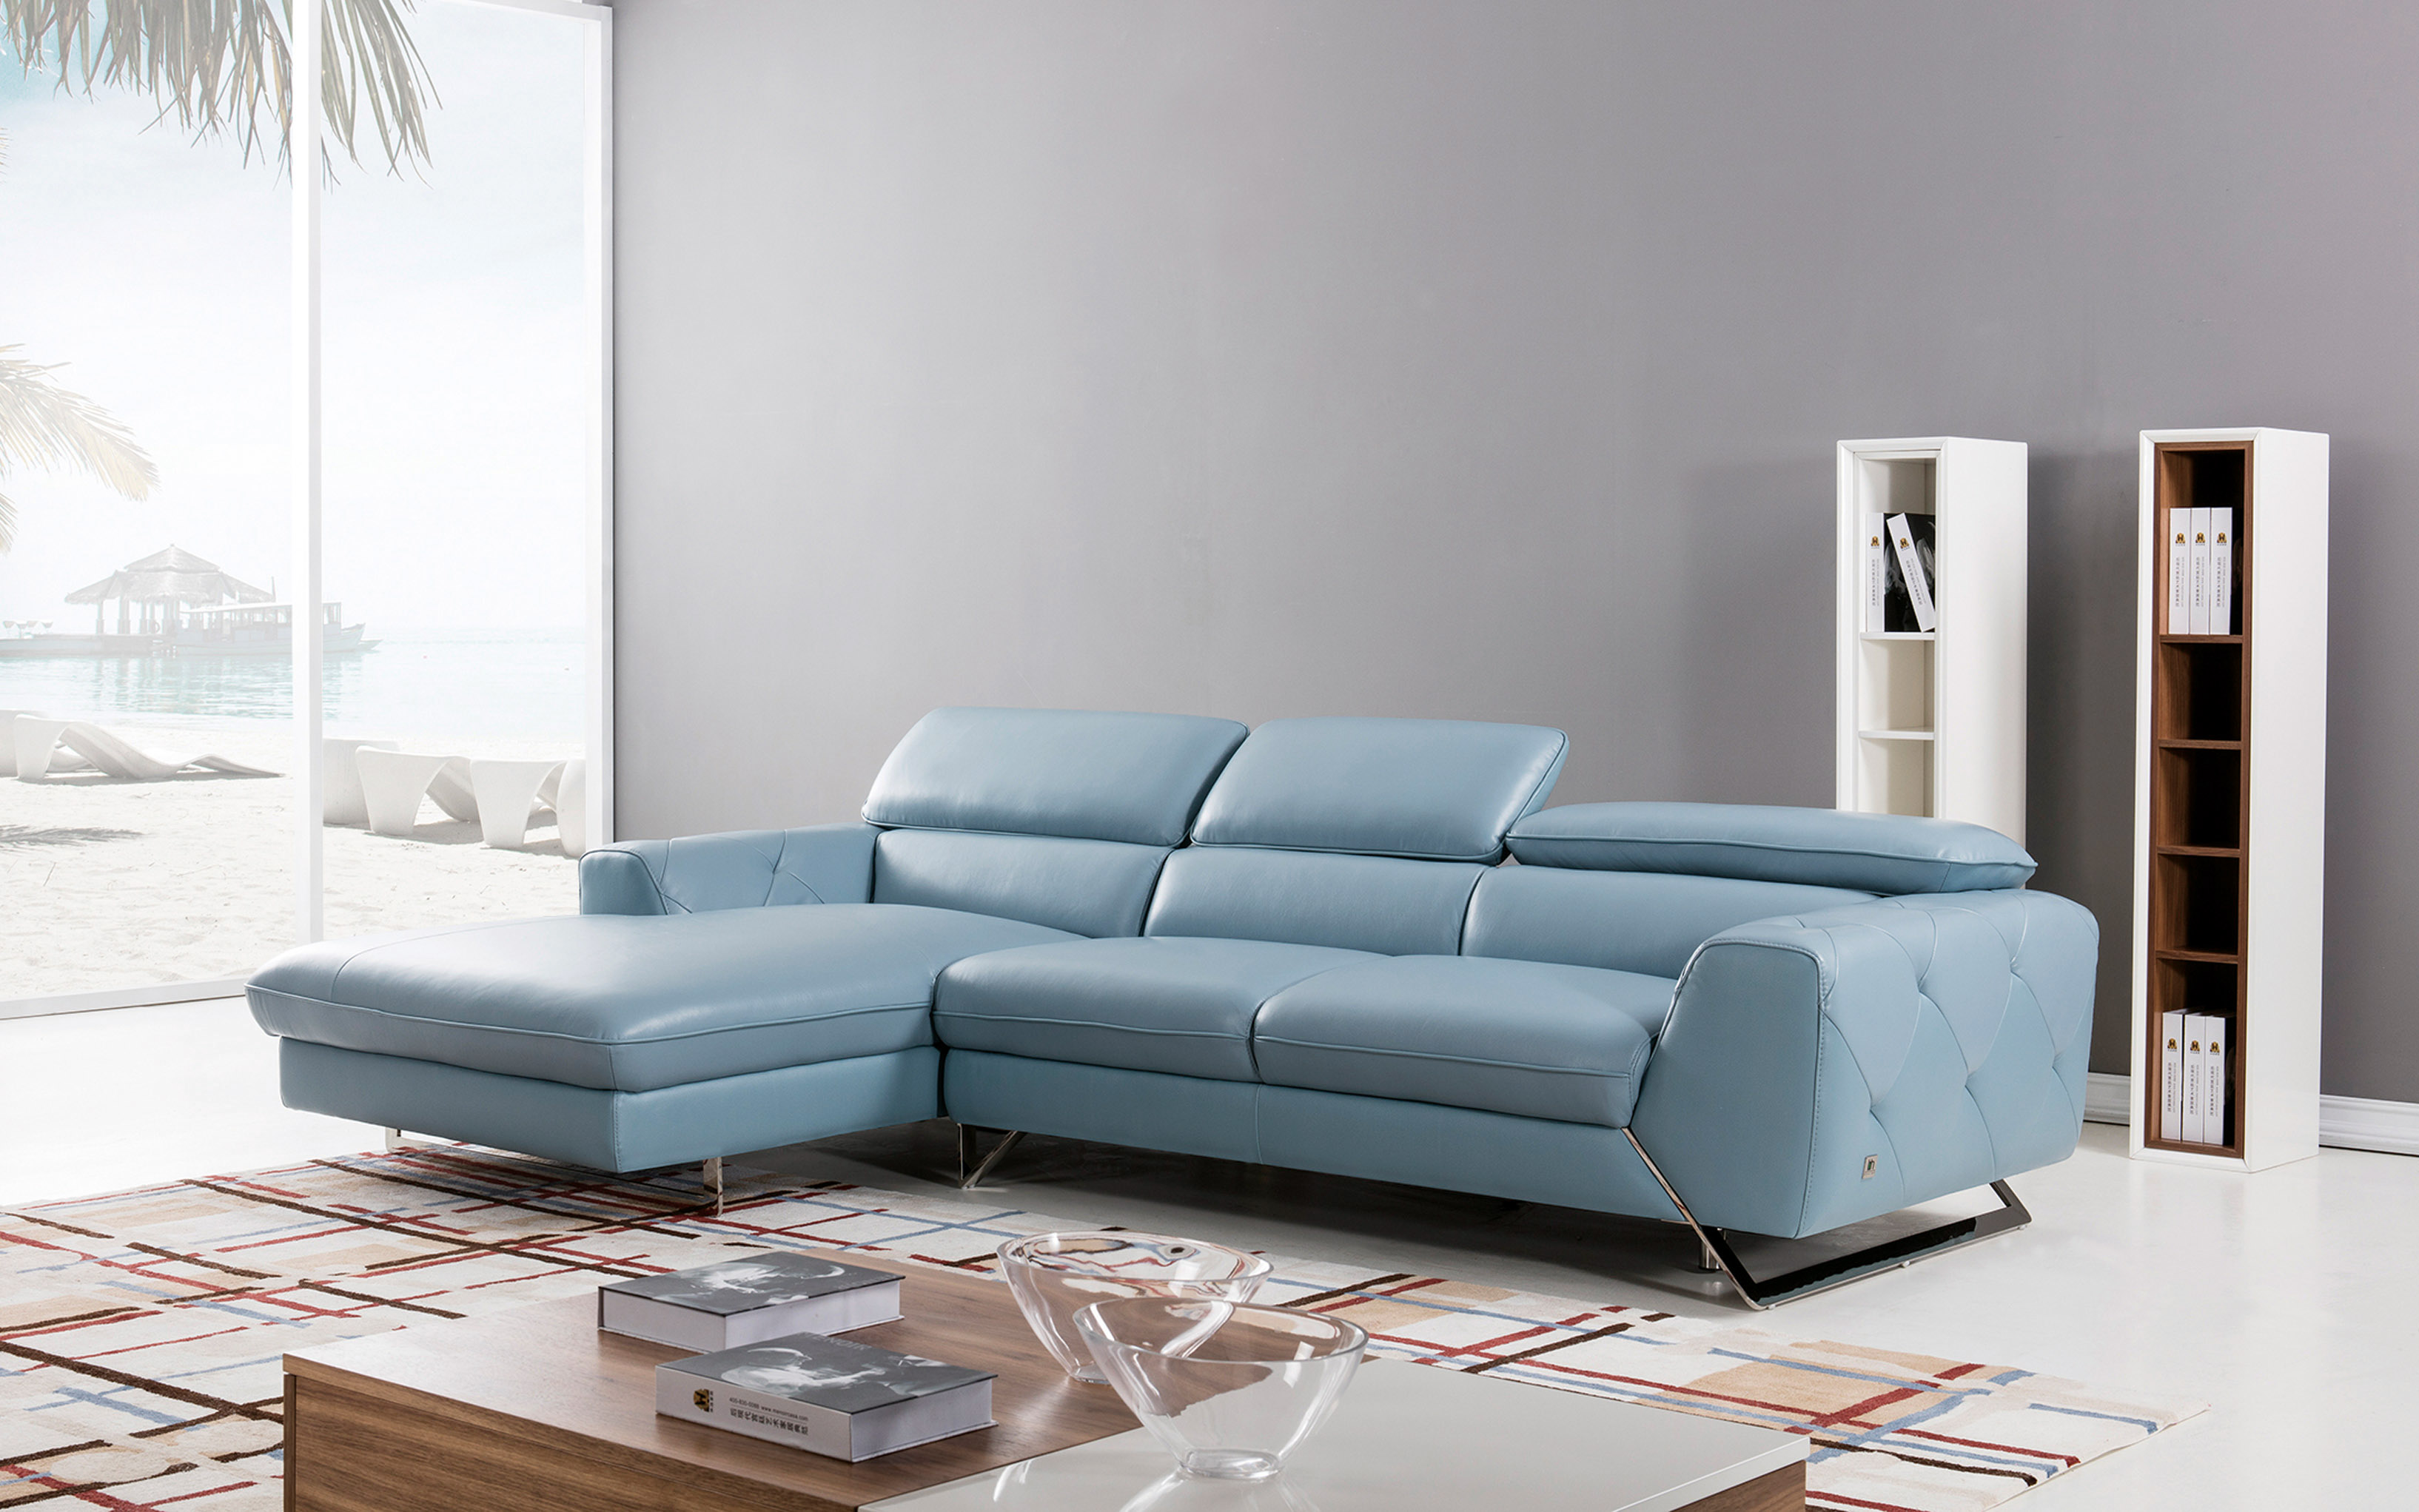 Graceful Tufted Italian Top Grain Leather Sectional Sofa